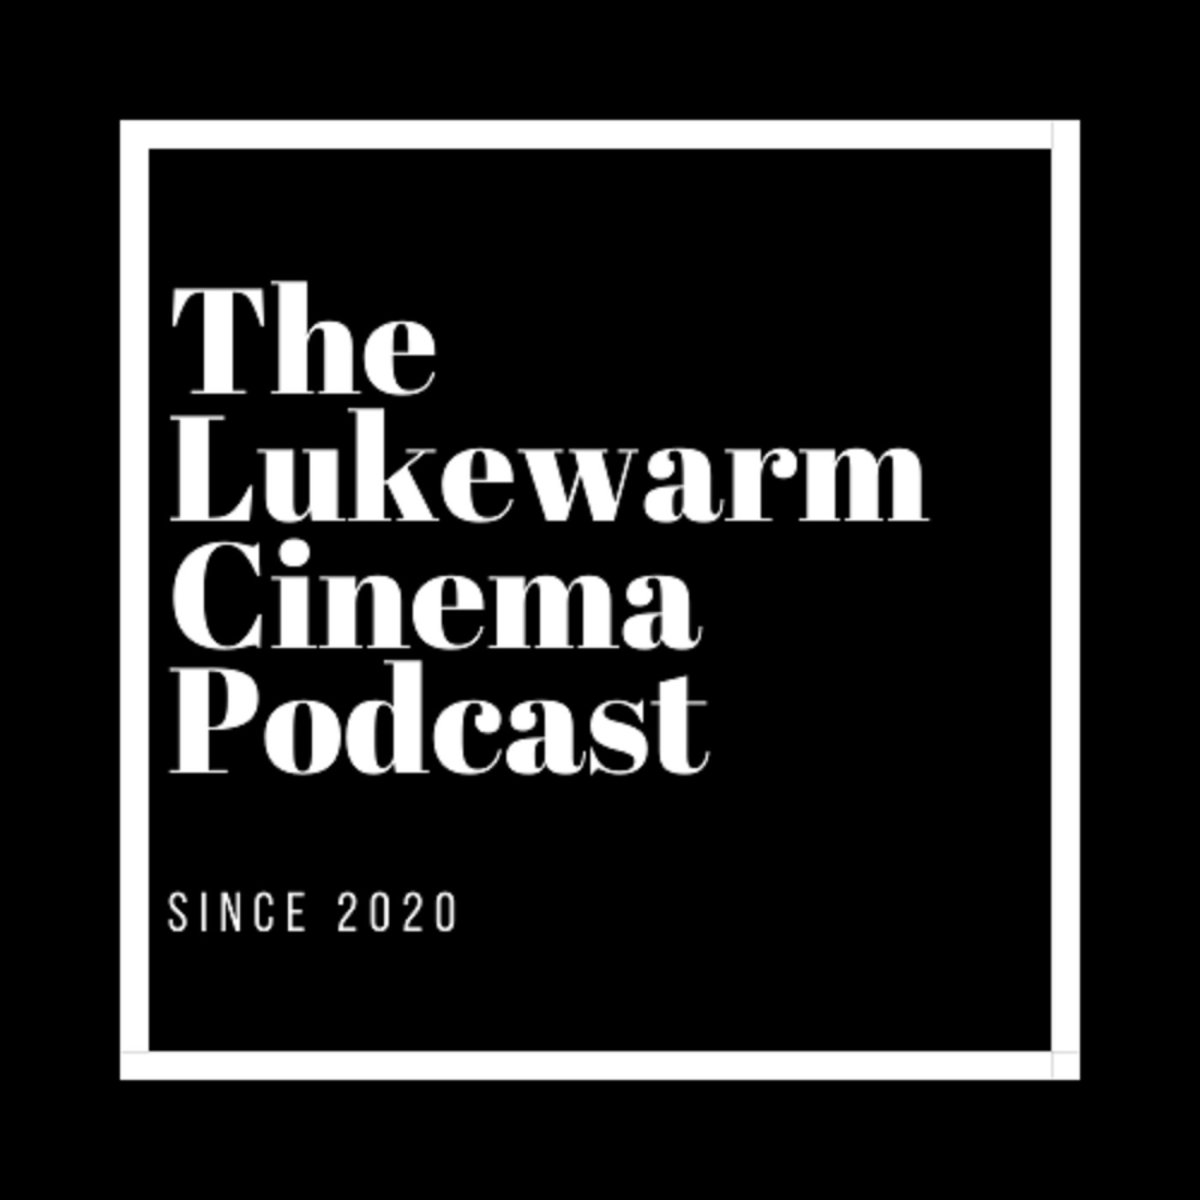 Who needs silence?! Listen to a #podcast by @LukewarmCinema! Hyperbole be damned, this is the peak of human creation. #disney #BSPN